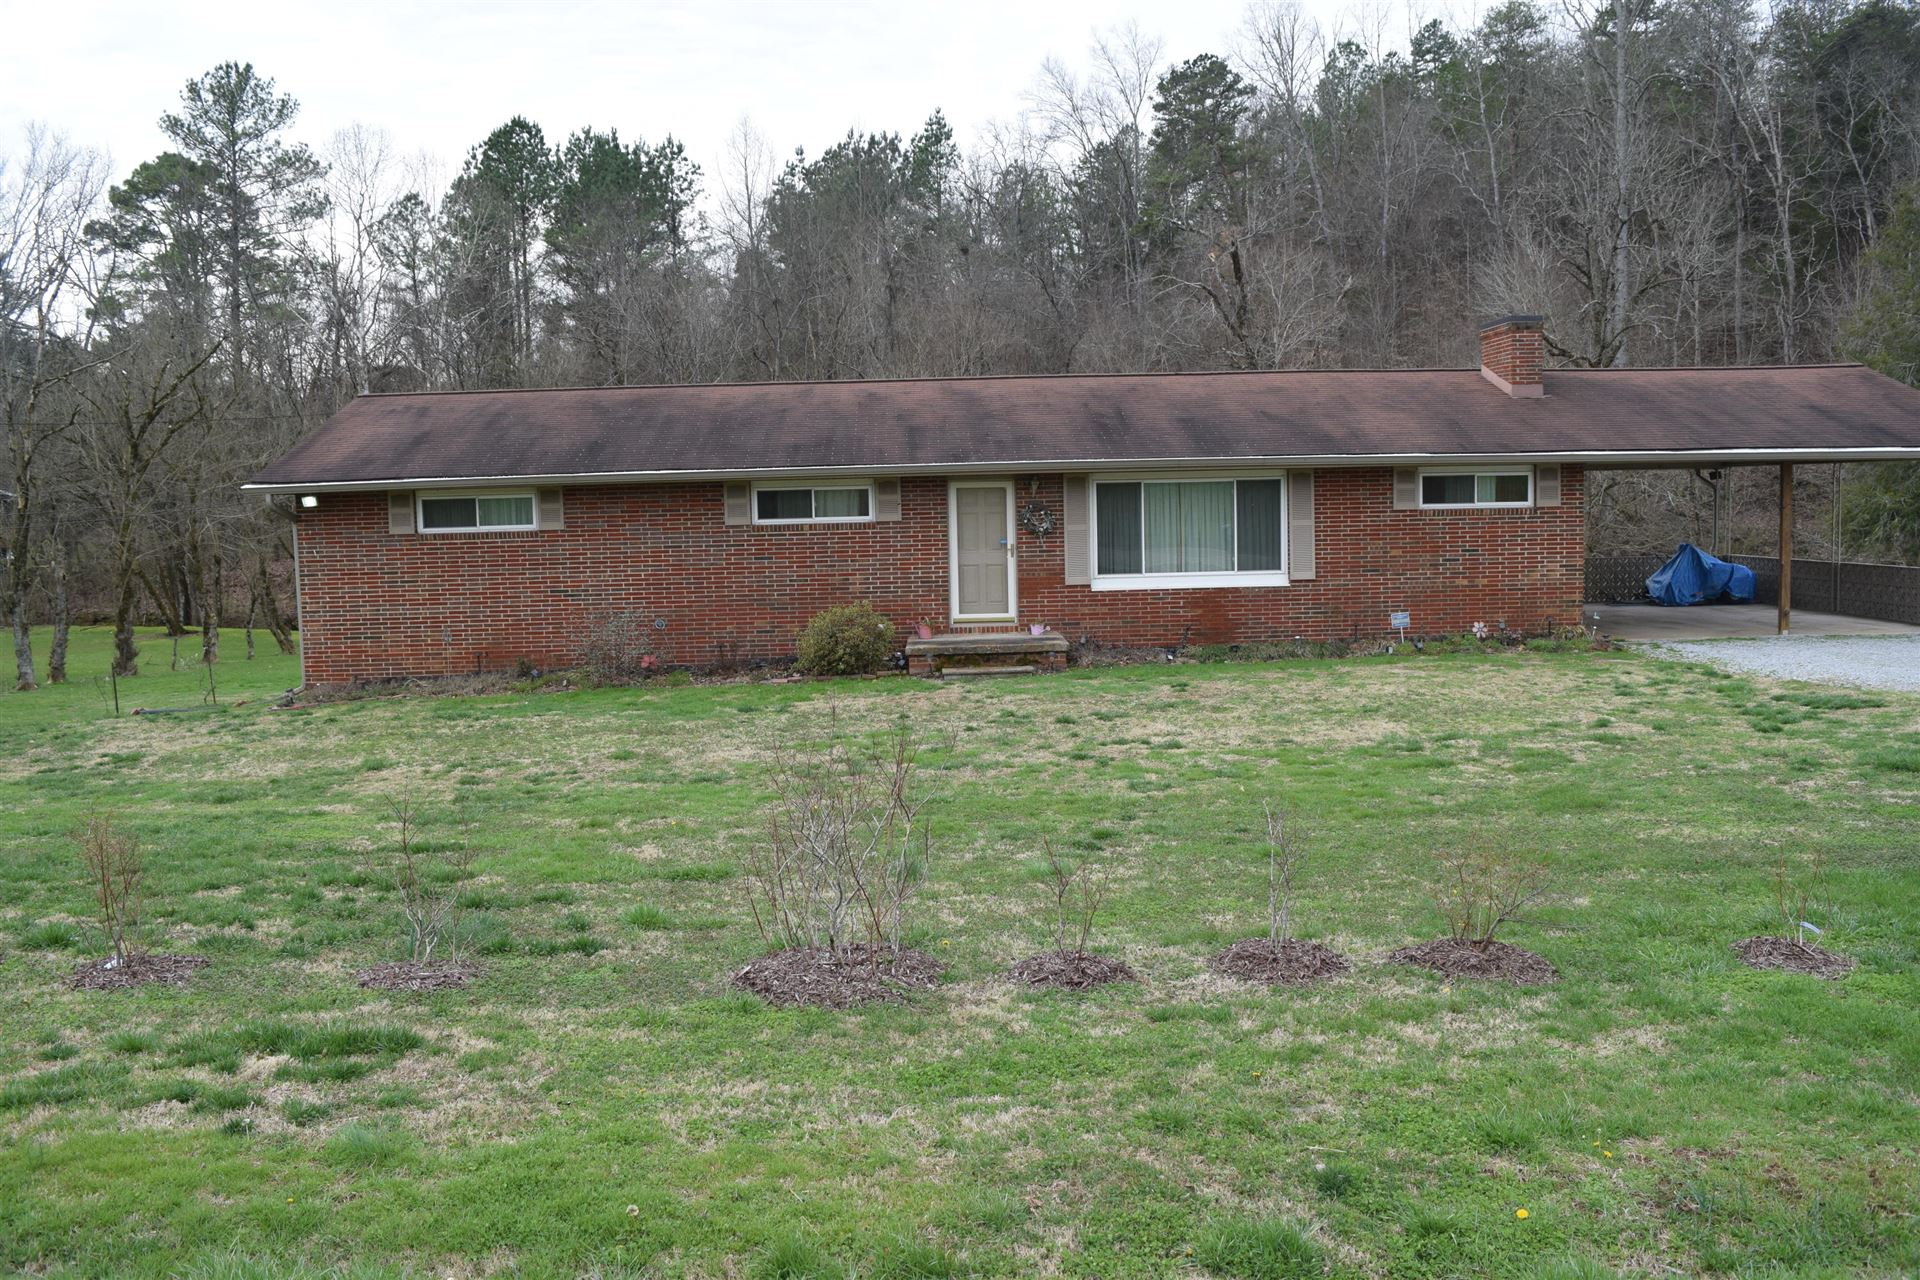 Photo of 1024 Kimberlin Heights Rd, Knoxville, TN 37920 (MLS # 1108231)